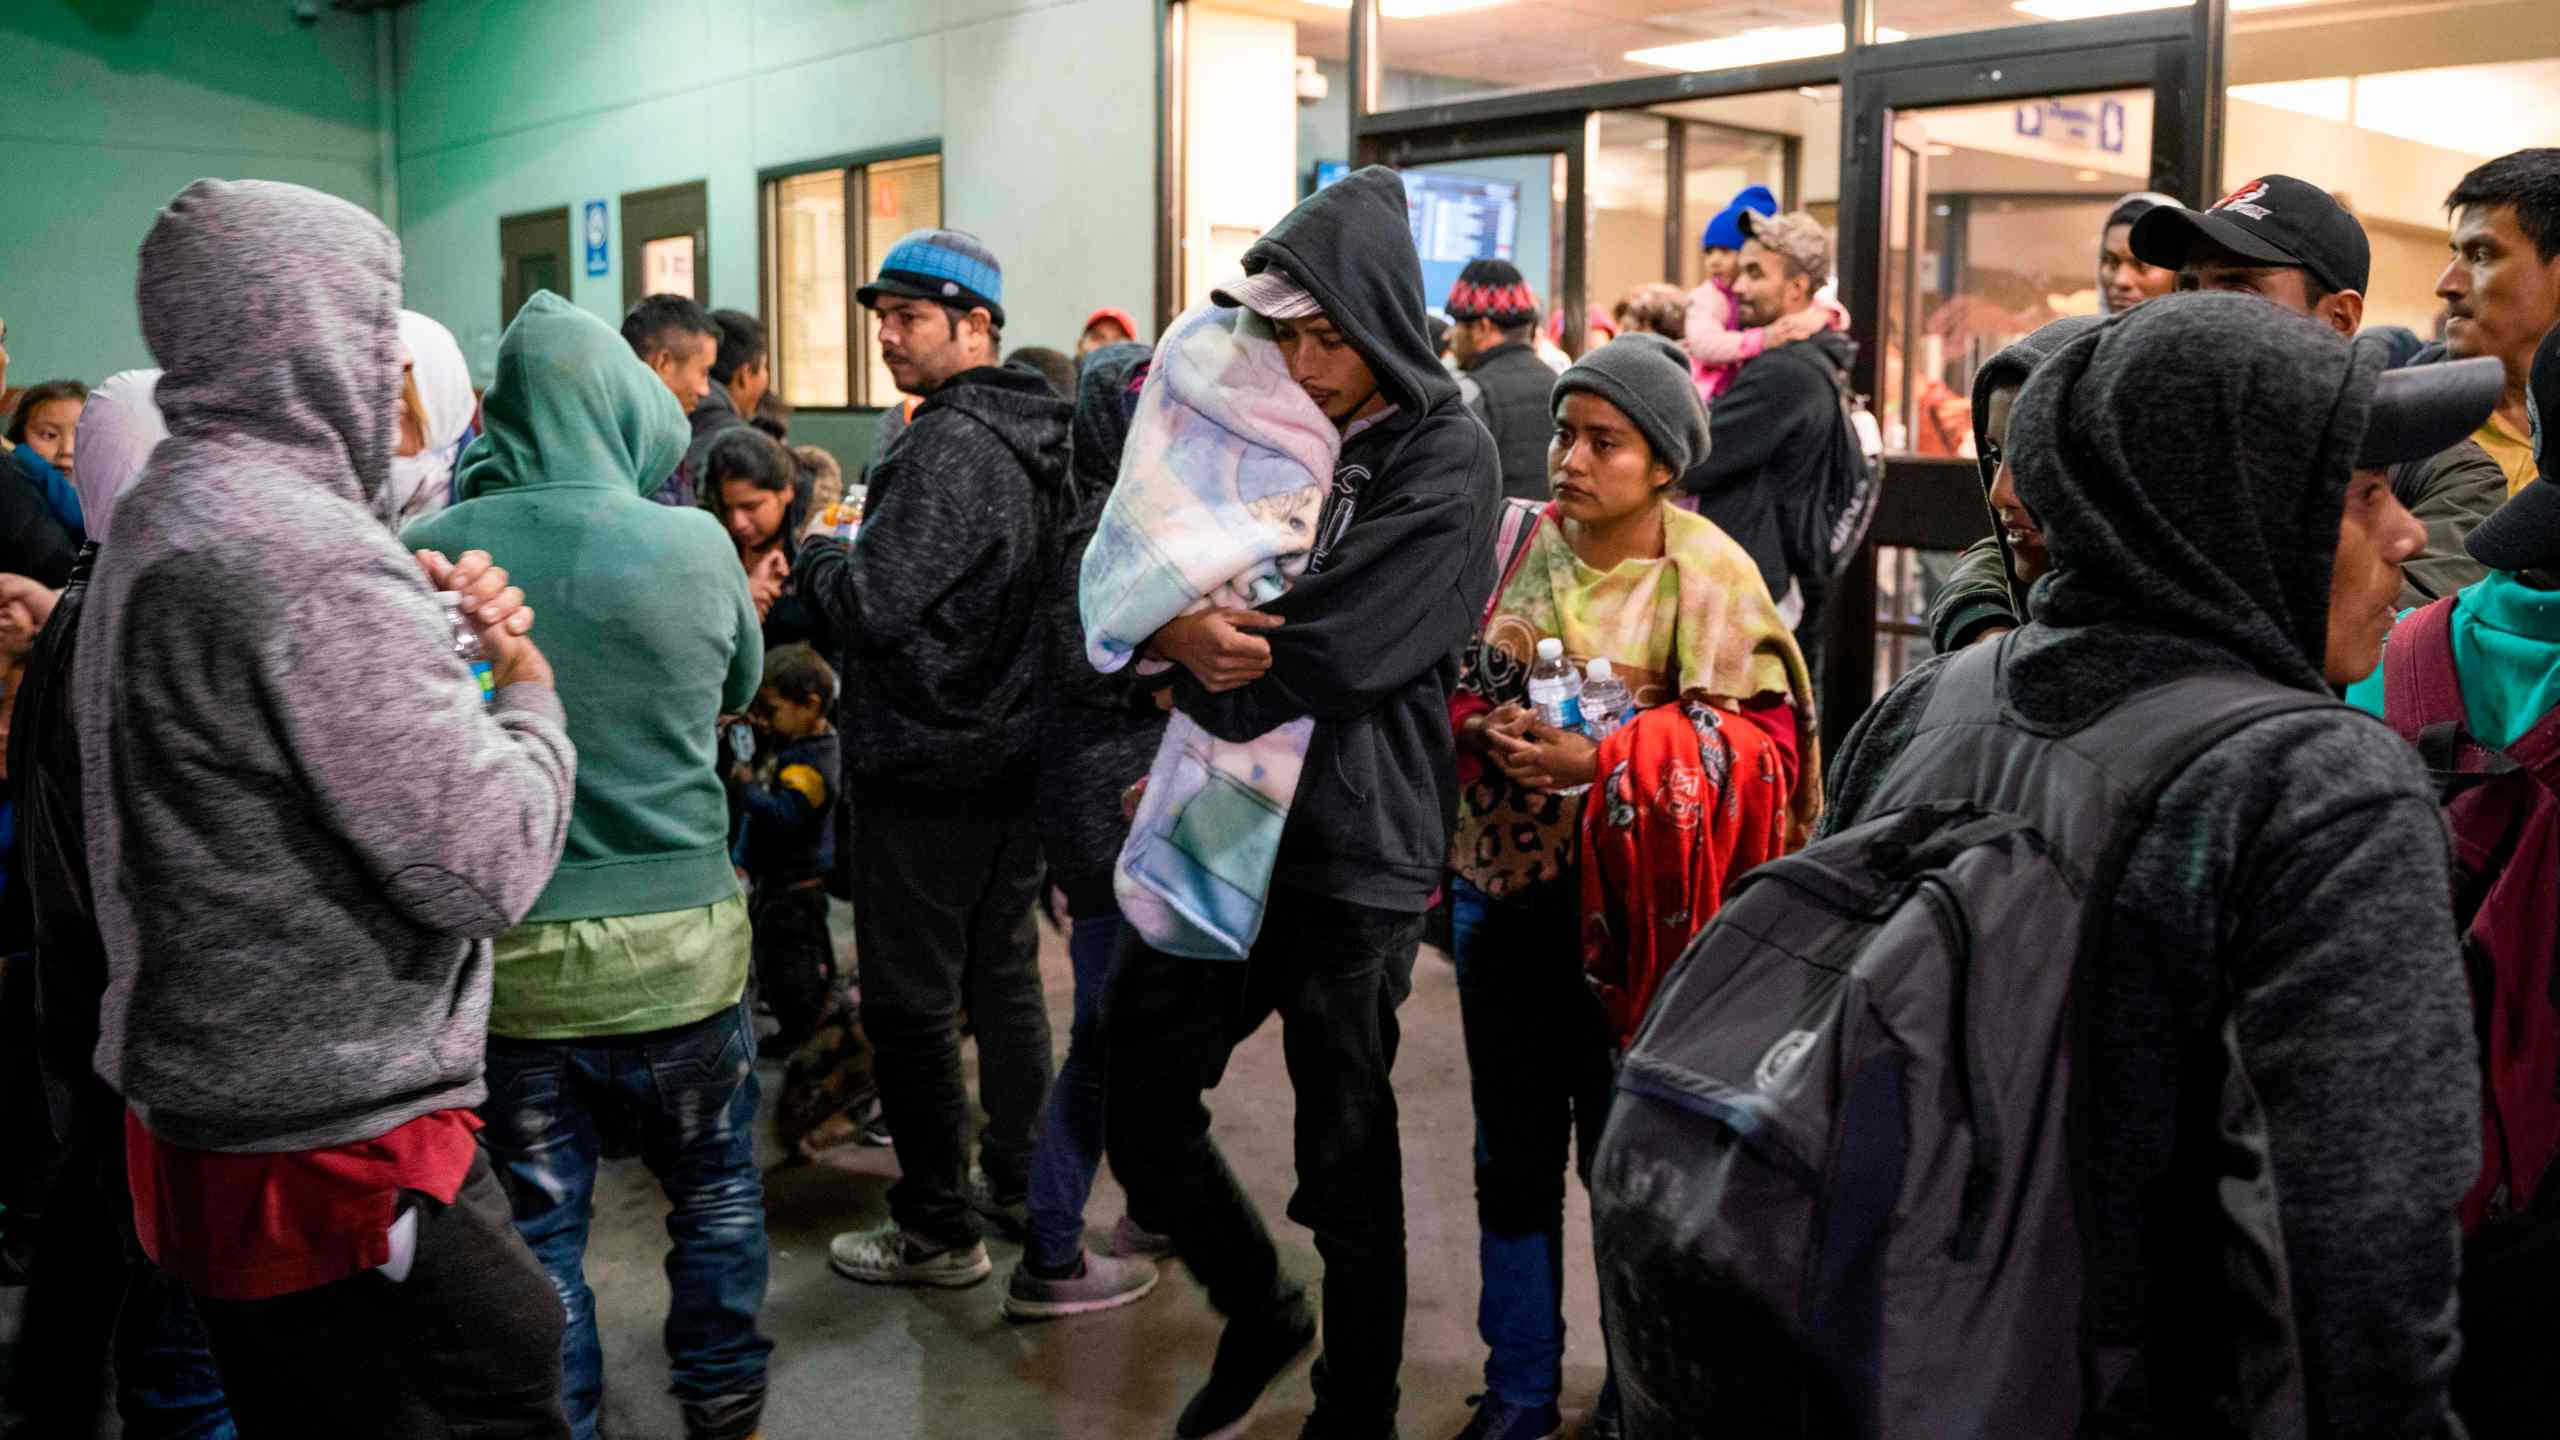 Asylum seekers stand at a bus stop after being dropped off by Immigration and Customs Enforcement at the Greyhound bus station in downtown El Paso, Texas late on Dec. 23, 2018. (Credit: PAUL RATJE/AFP/Getty Images)